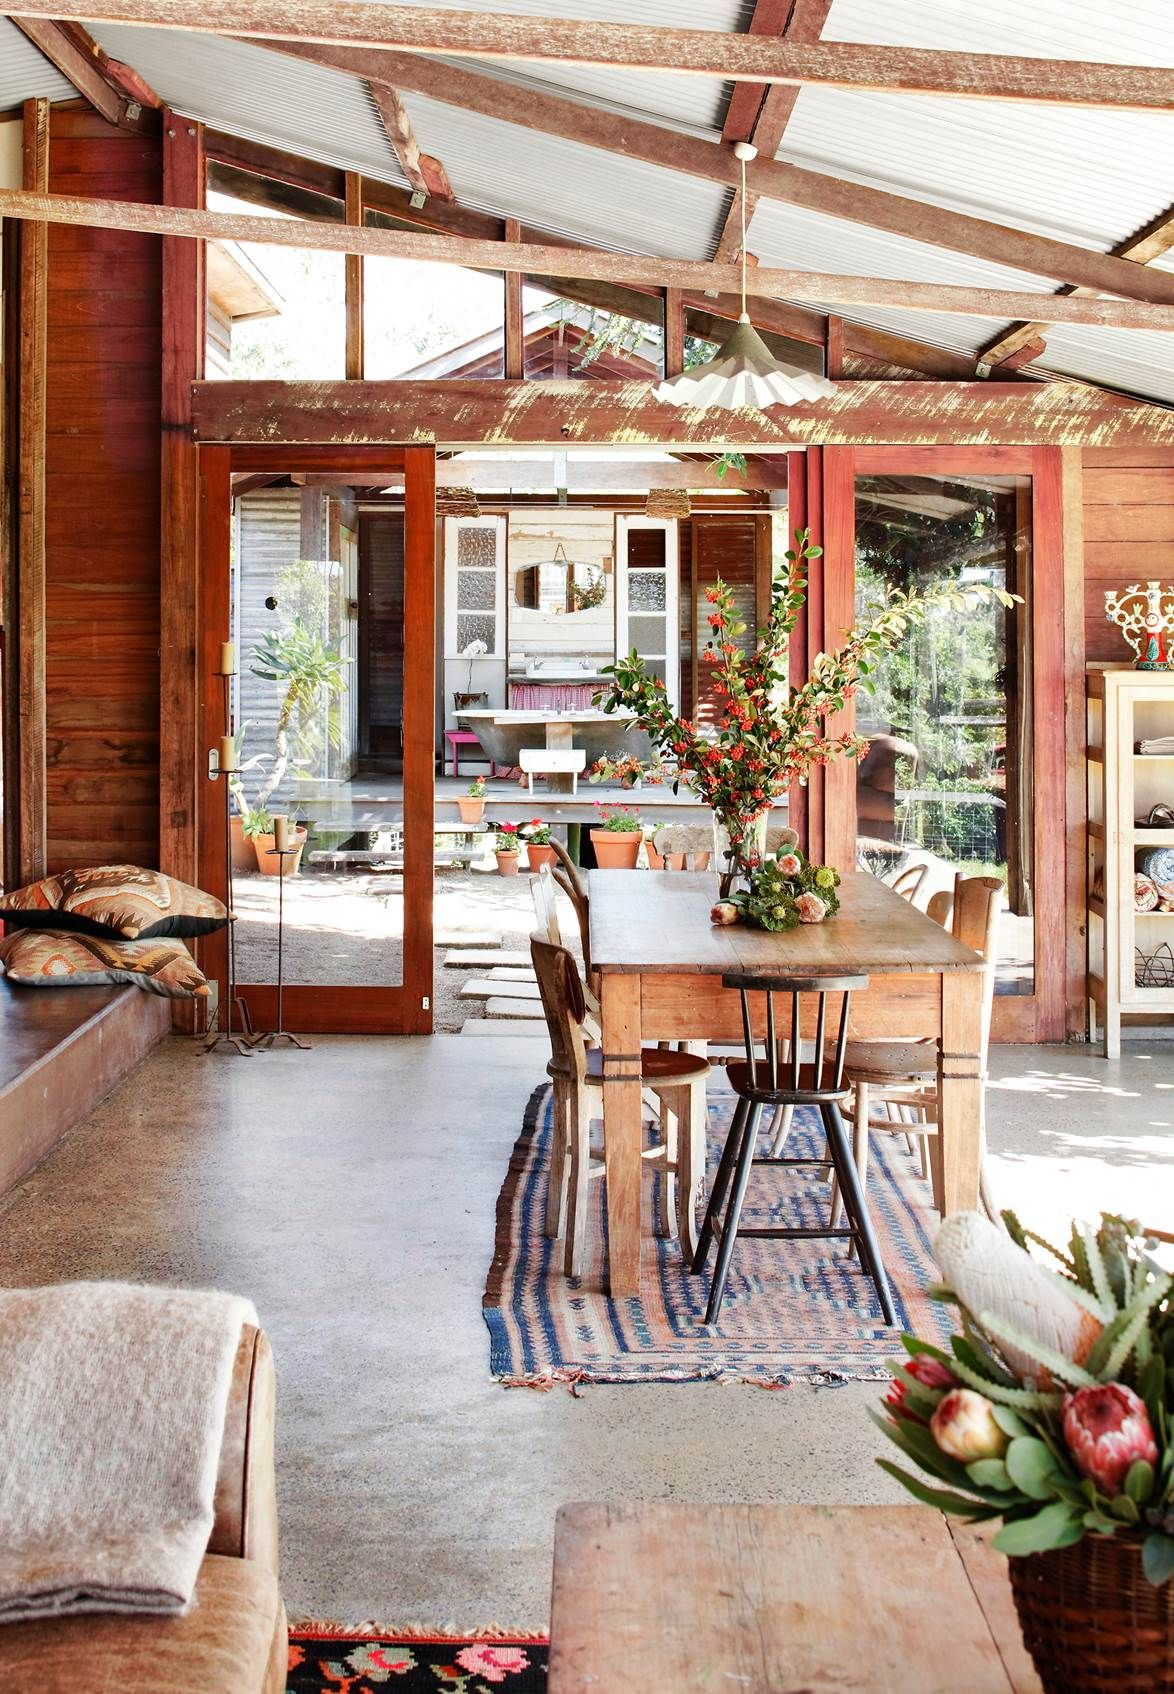 A Cow Shed Conversion In Queensland Cow shed, Australian